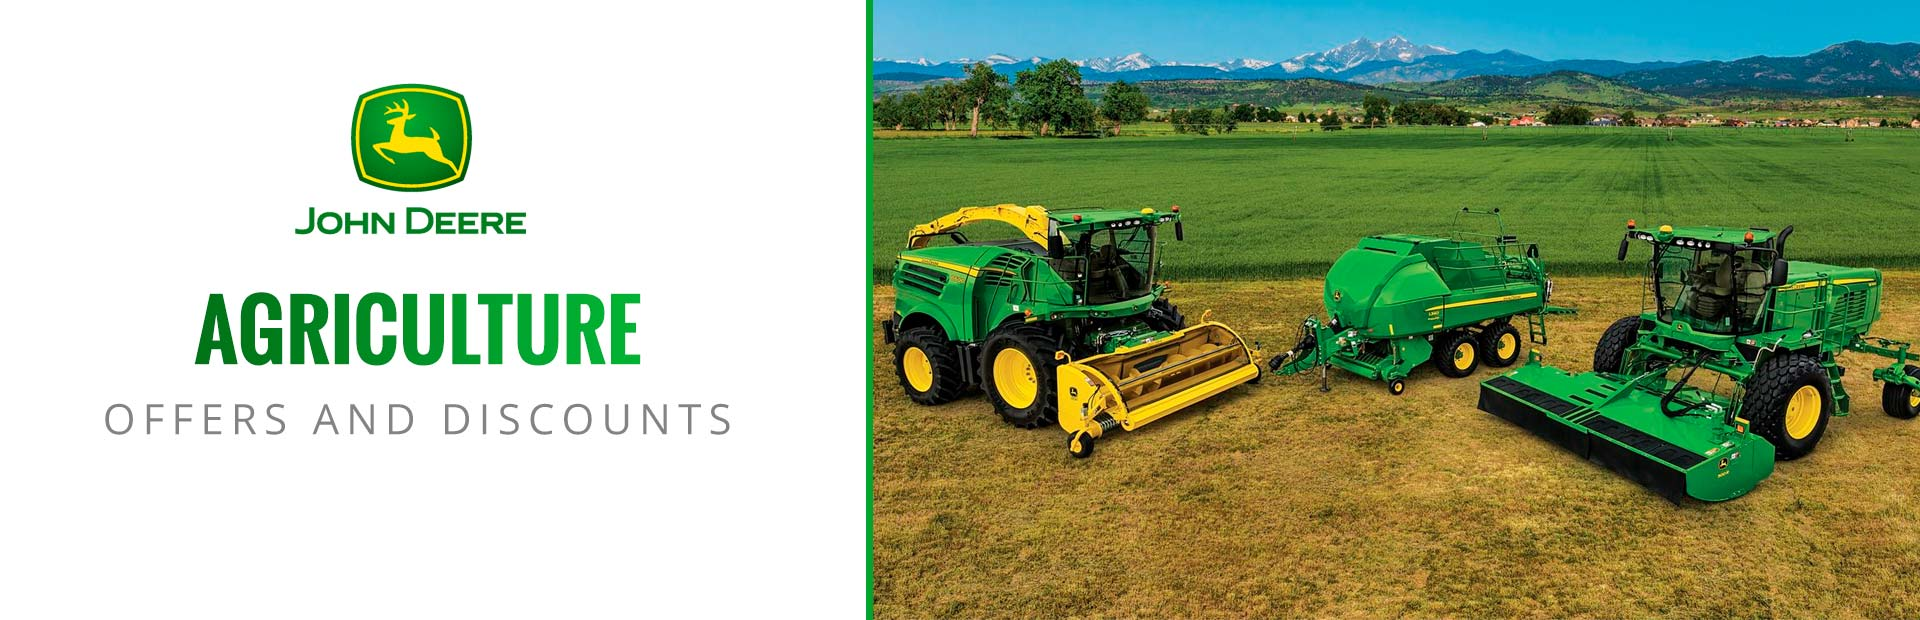 John Deere: Agriculture Offers and Discounts